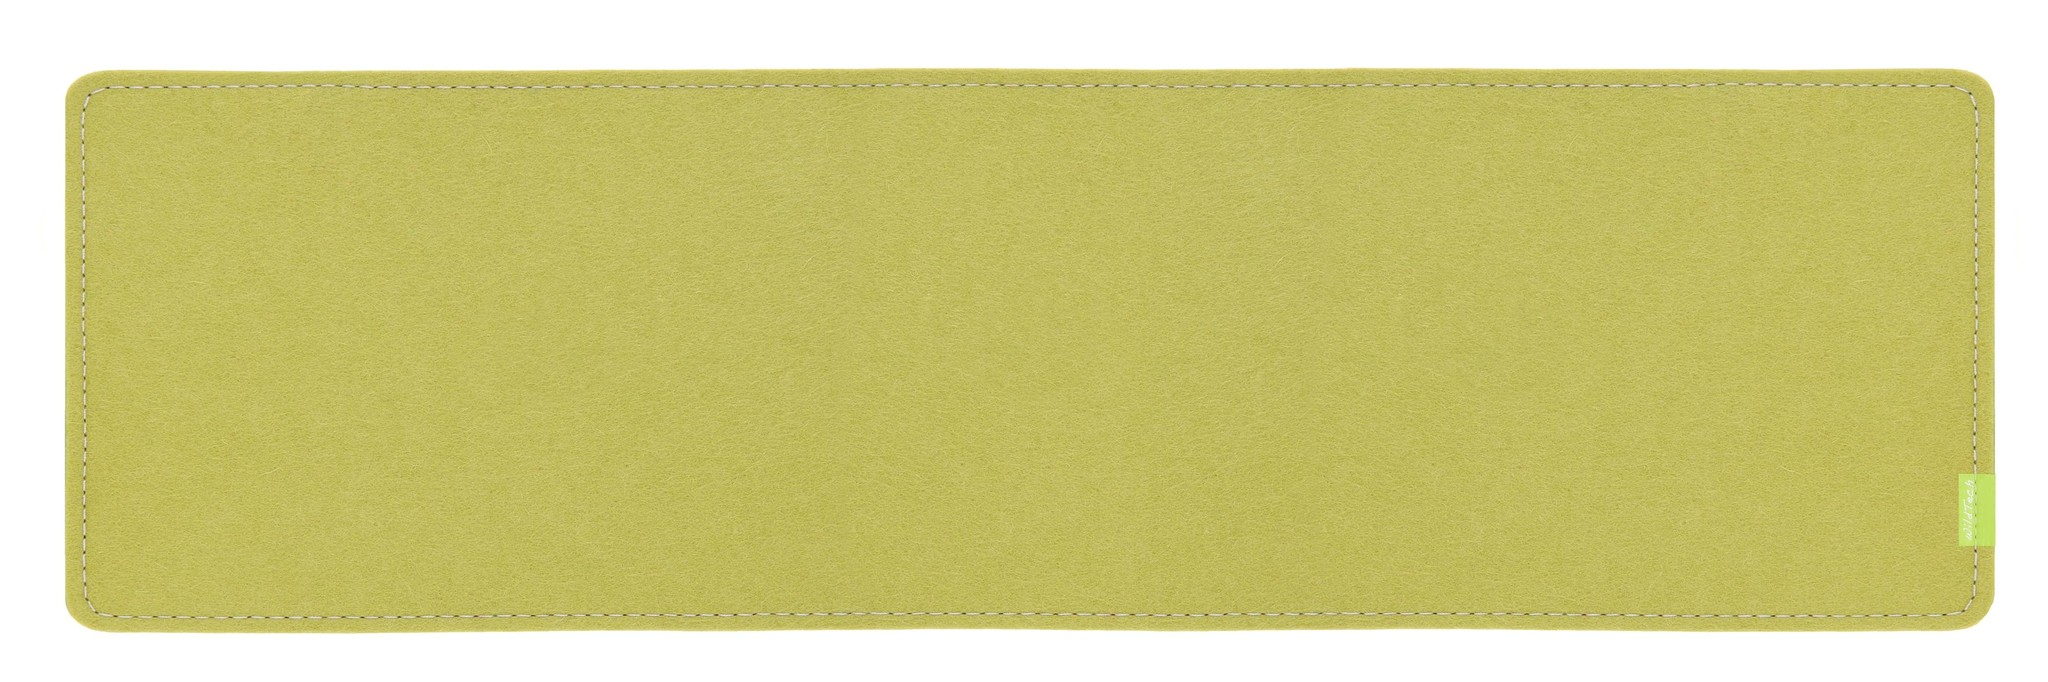 Underlay Lime-Green-1